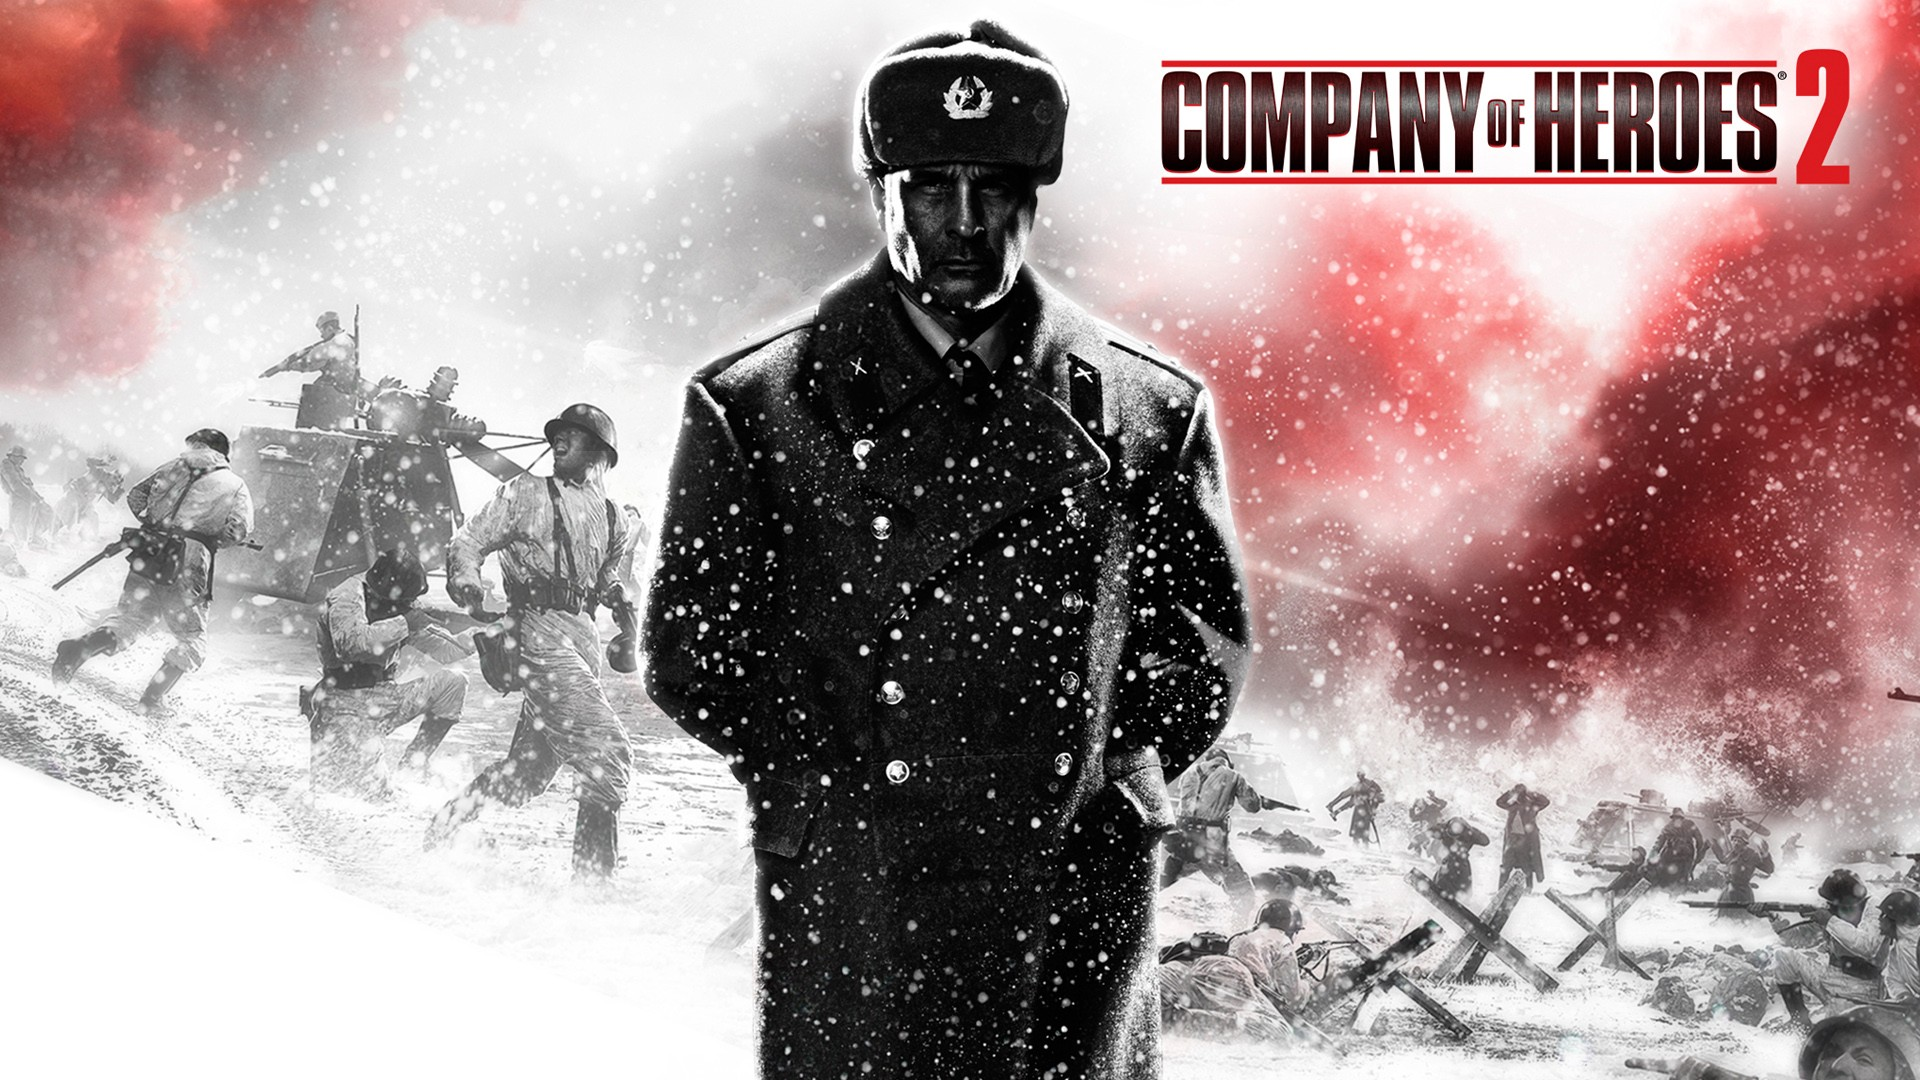 Assassins Creed Wallpaper Hd 2013 Company Of Heroes 2 Game Wallpapers Hd Wallpapers